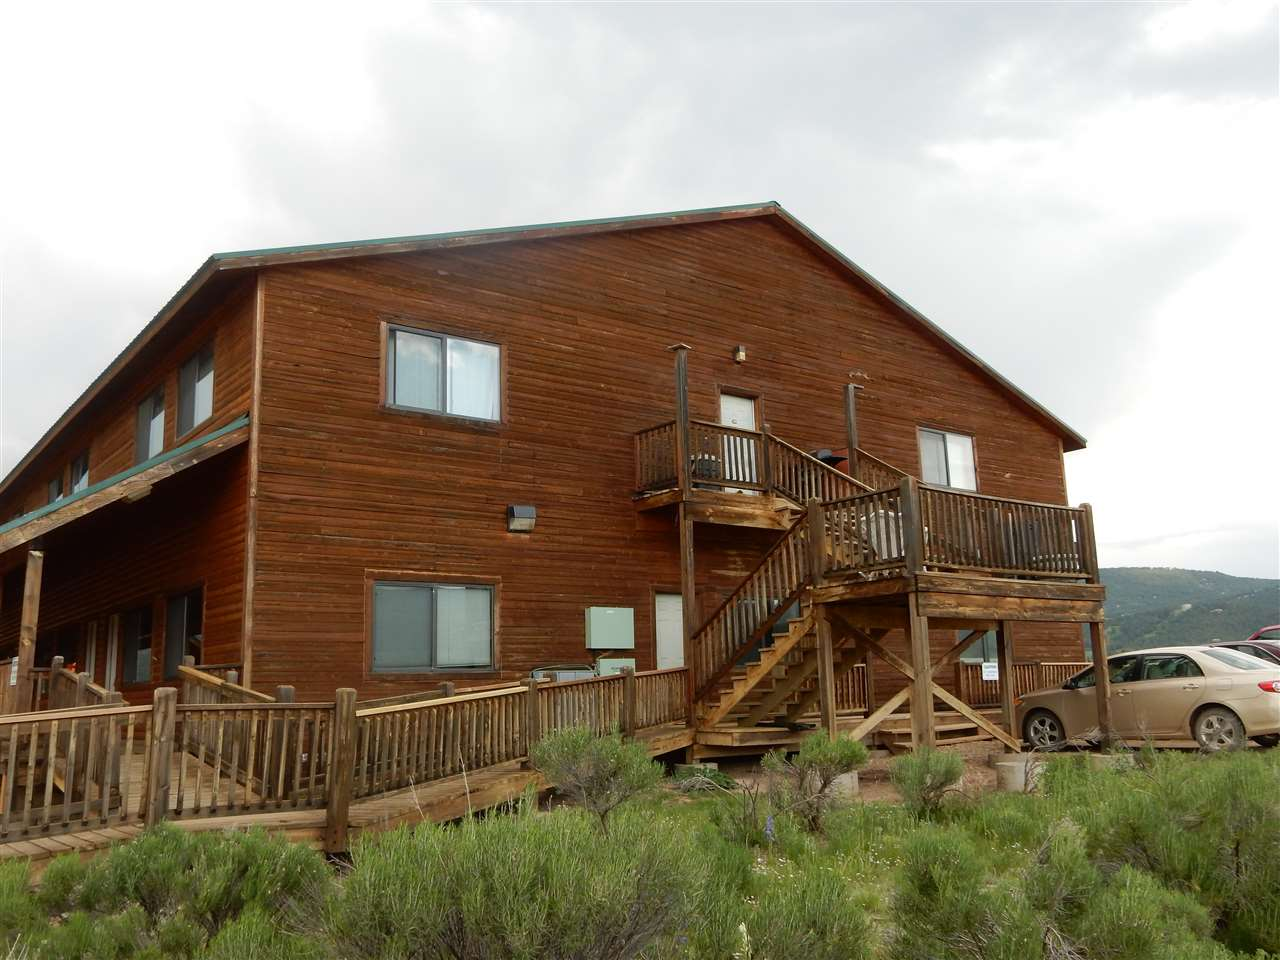 3454 Mountain View Blvd, Angel Fire, NM 87710